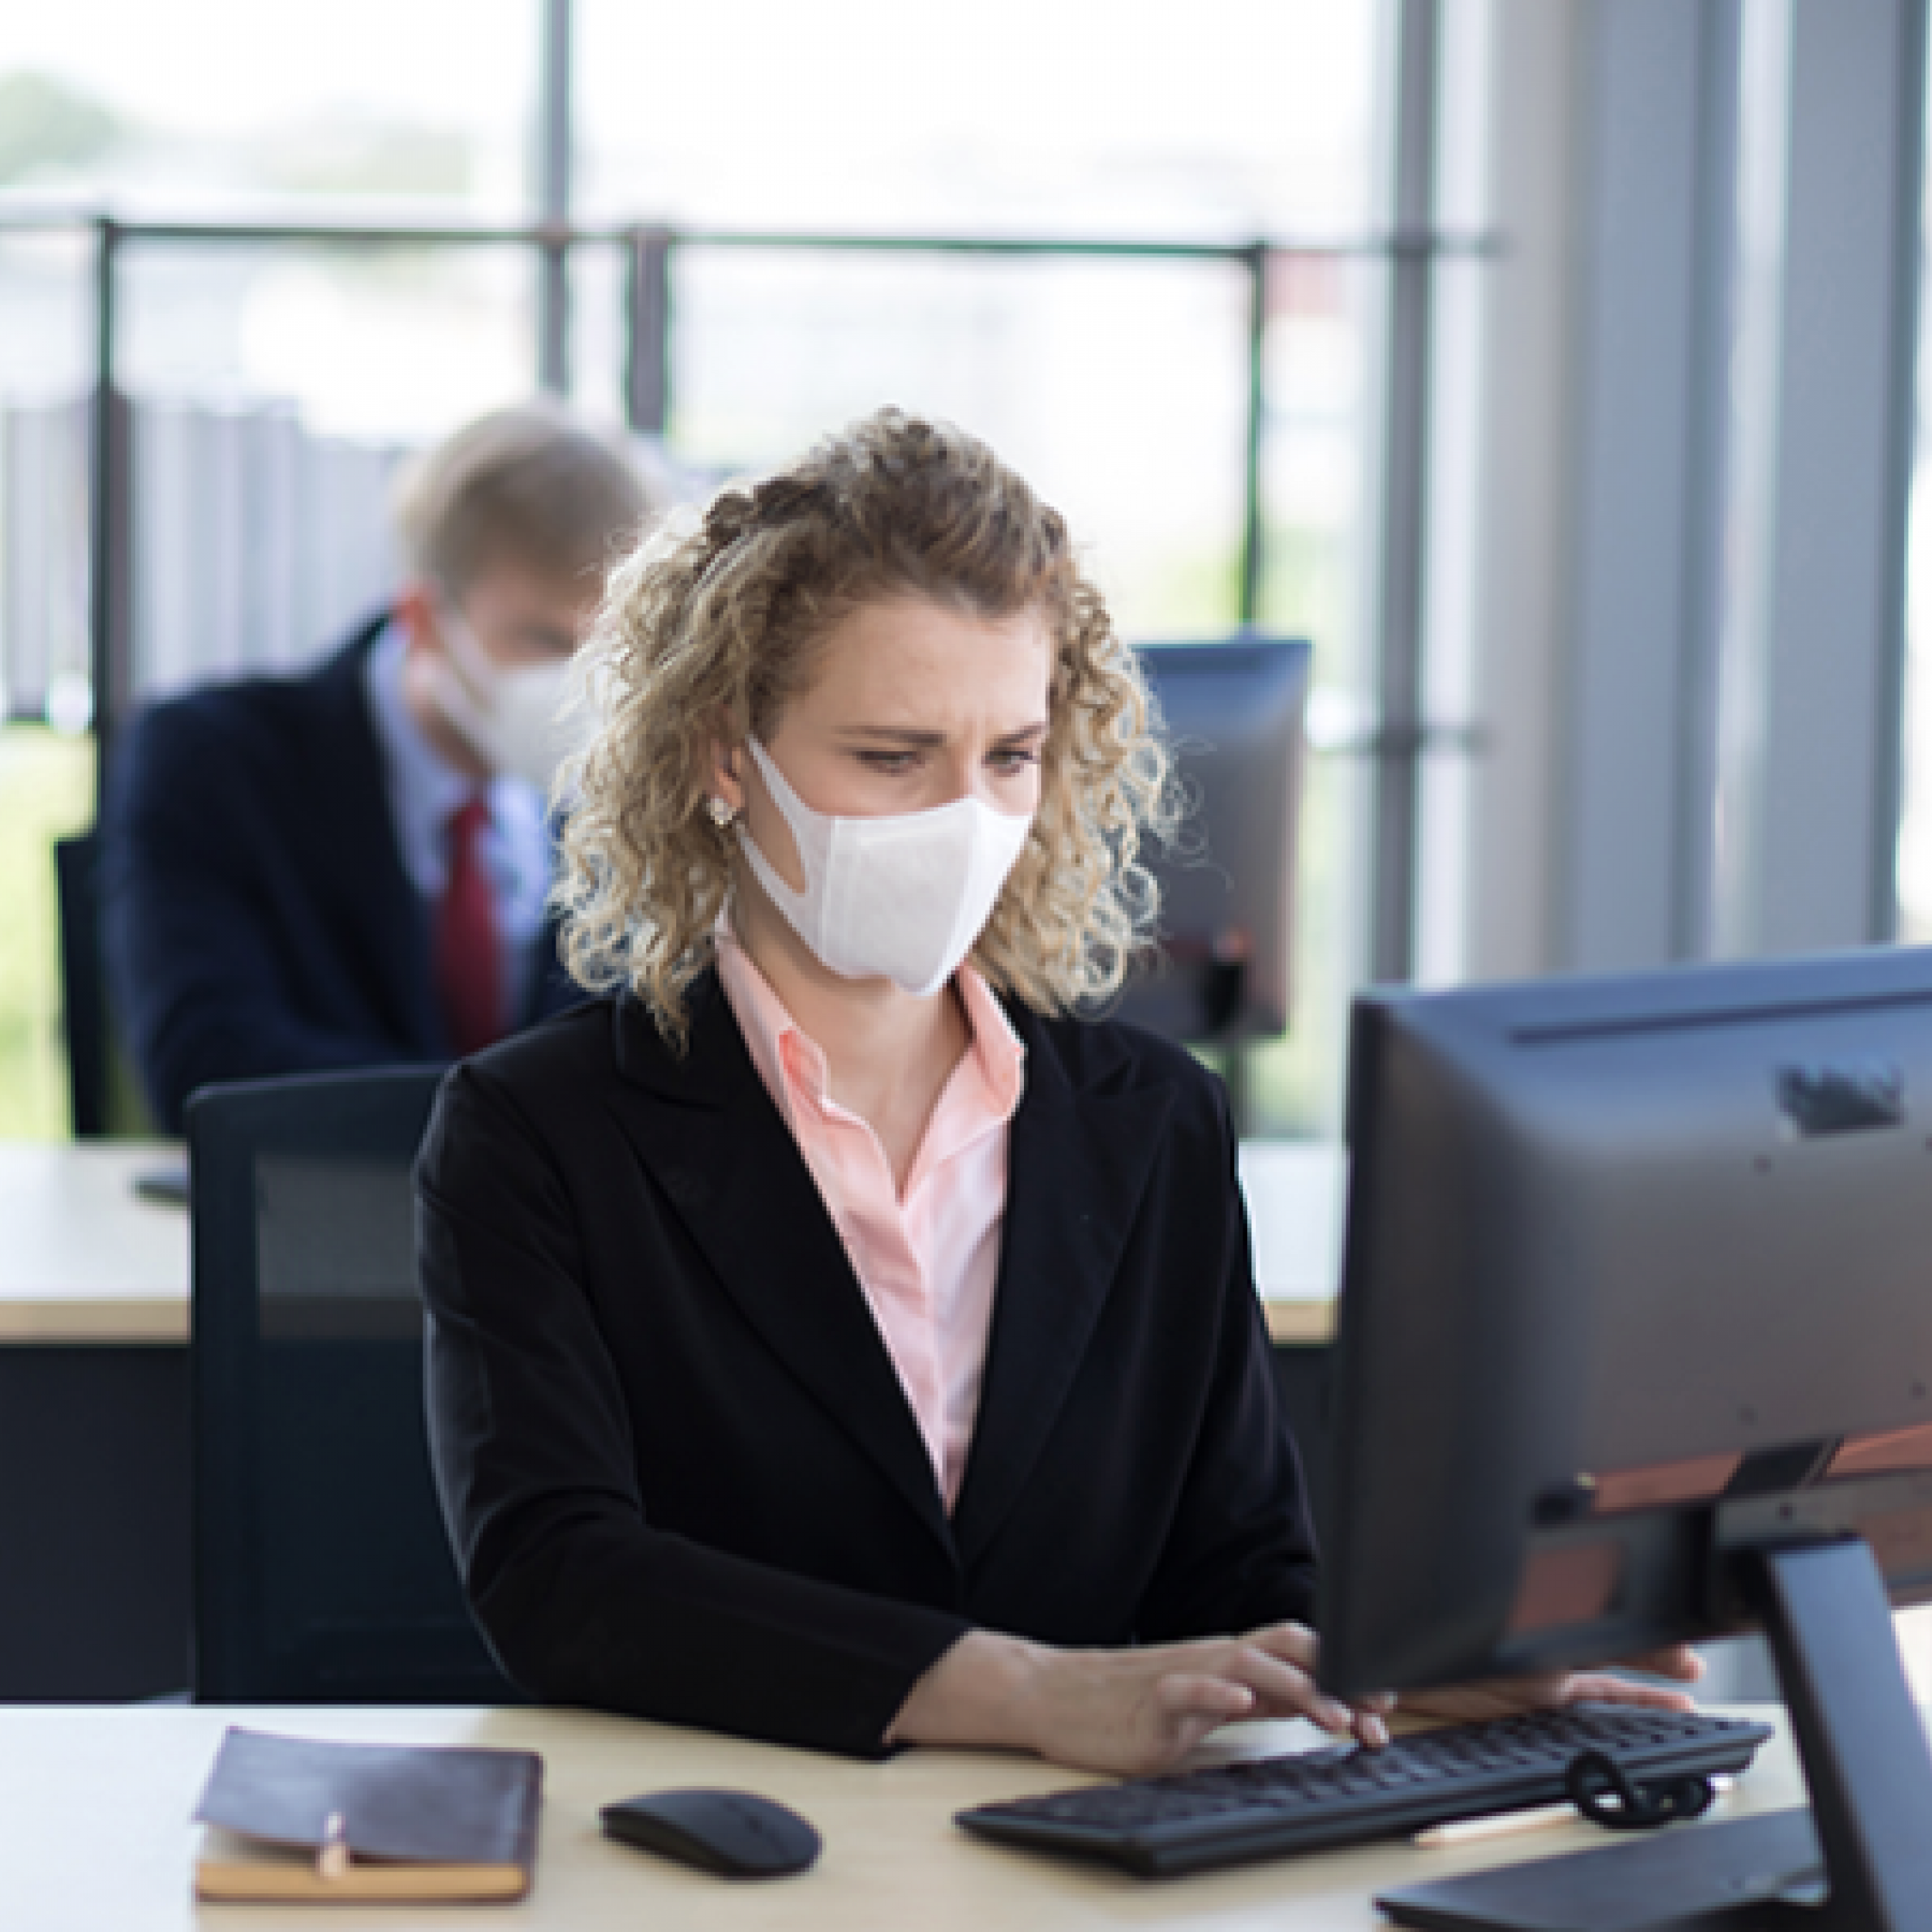 image of office worker with facial mask